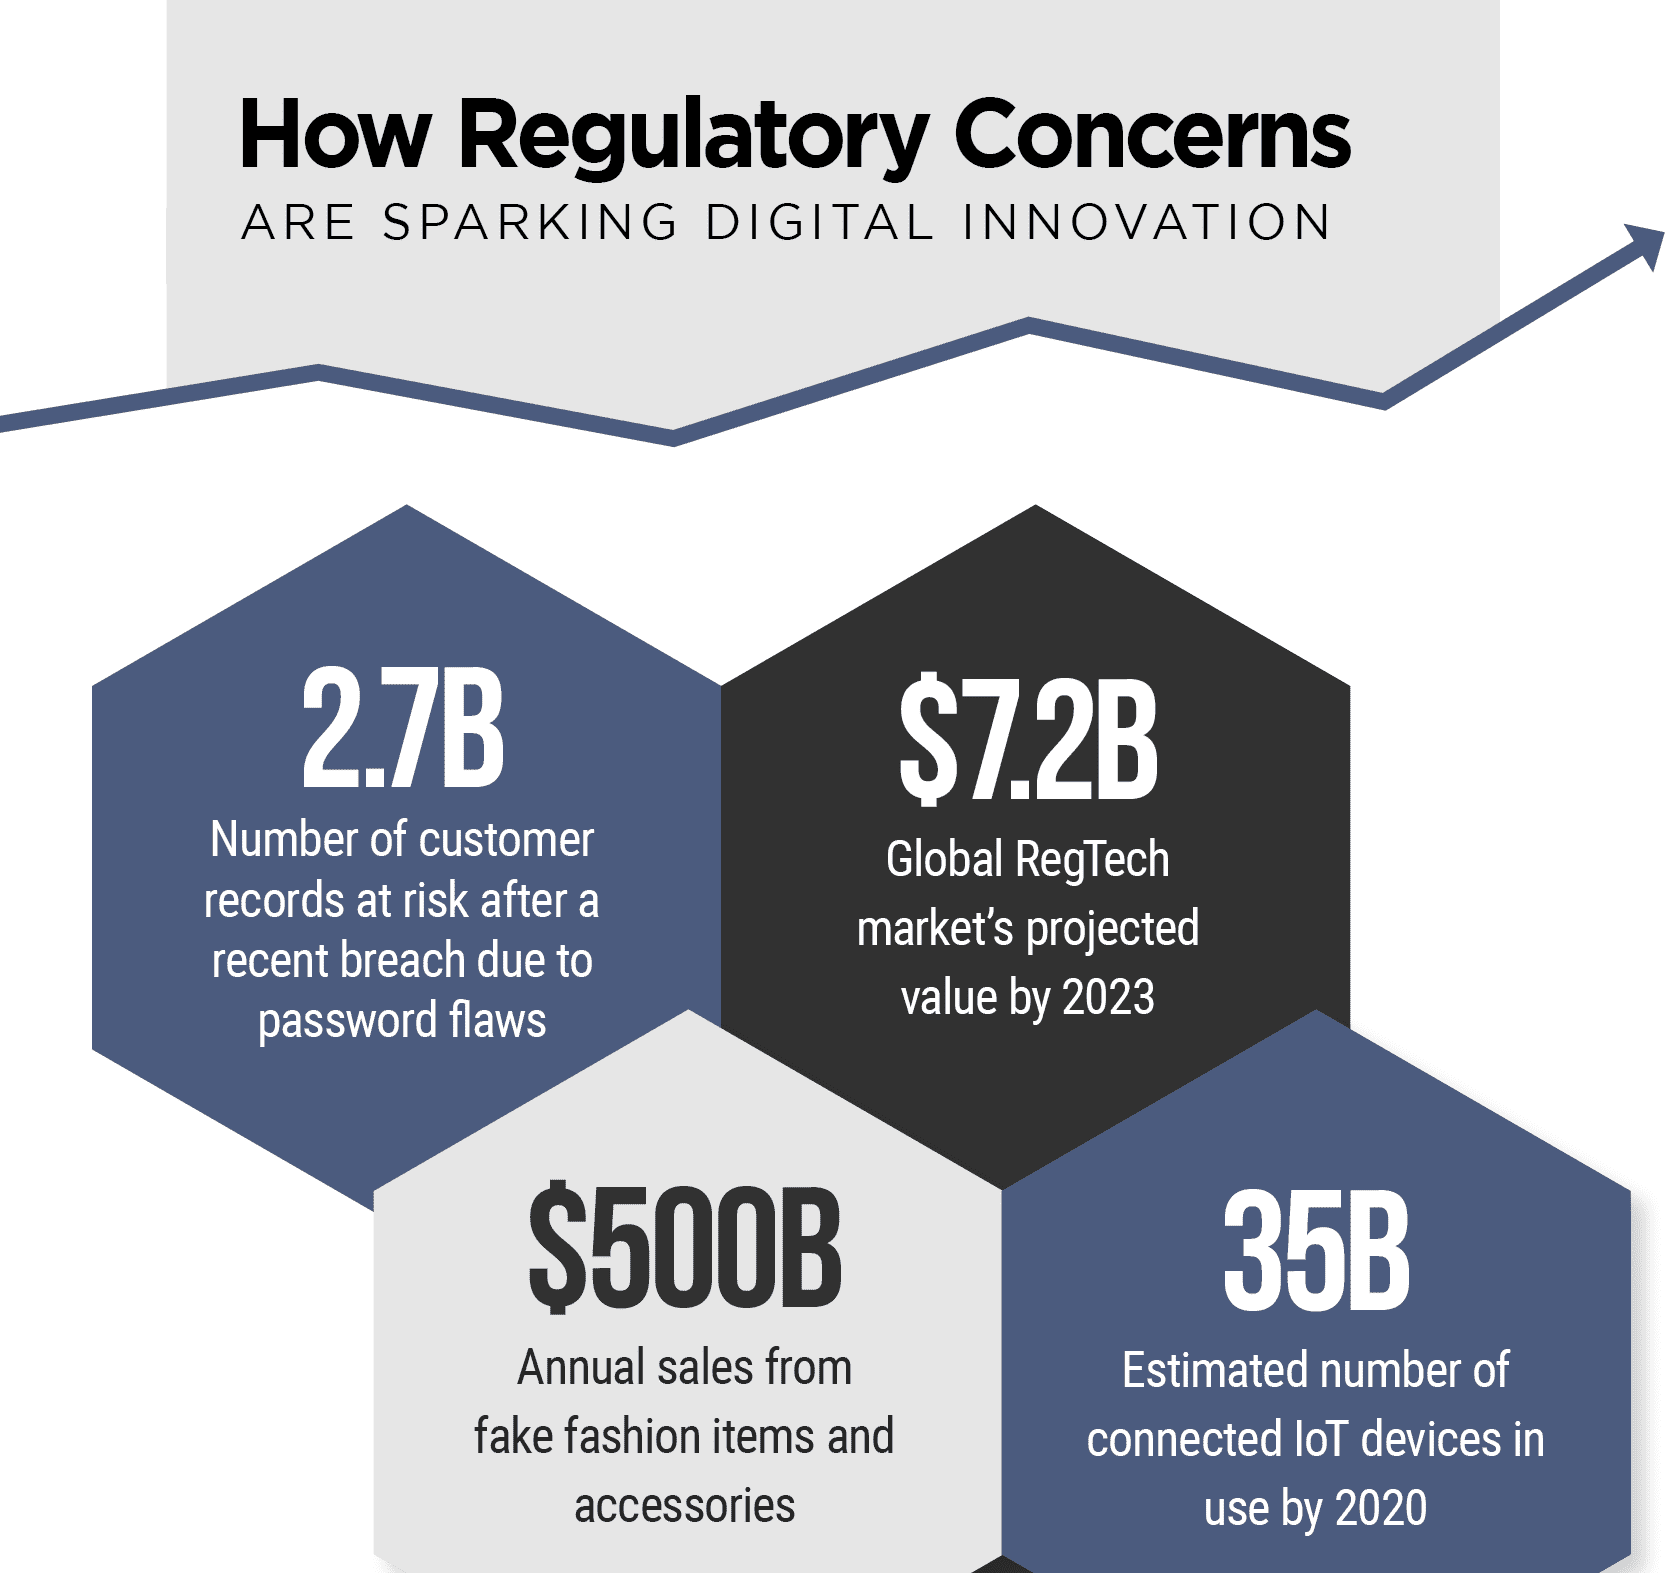 How Regulatory Concerns Are Sparking Digital Innovation